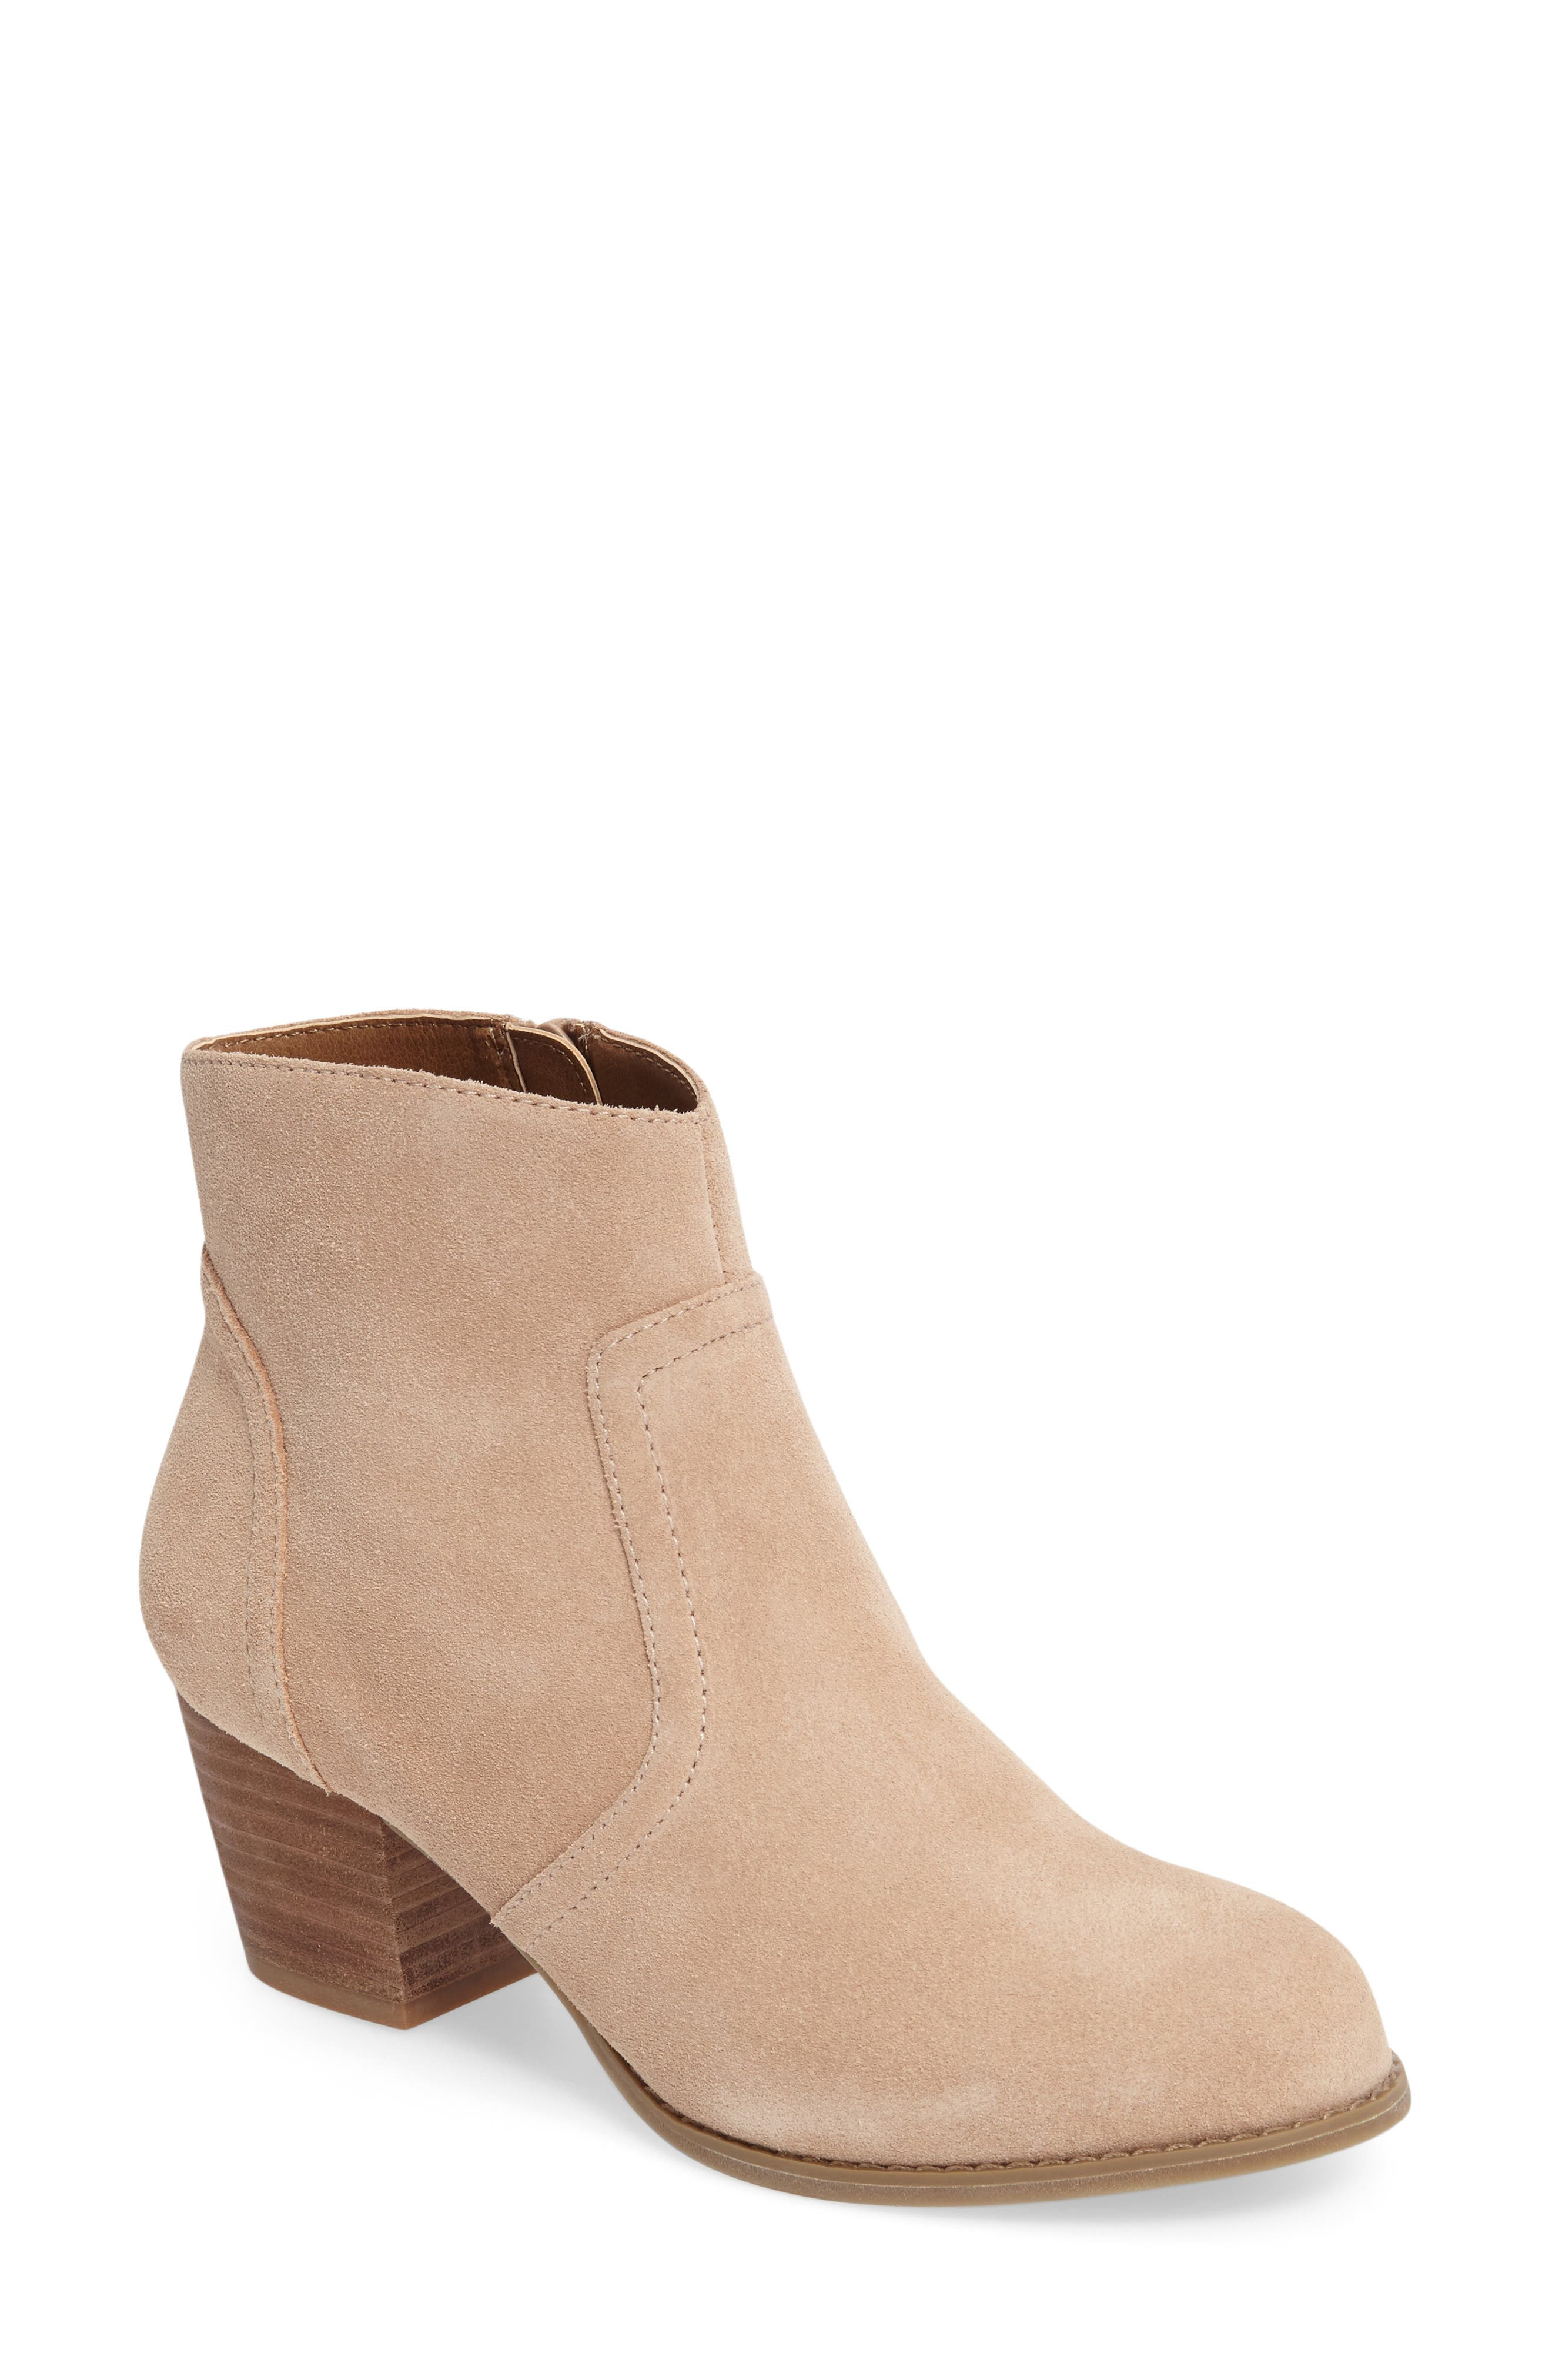 Romy Bootie,                         Main,                         color, Caramel